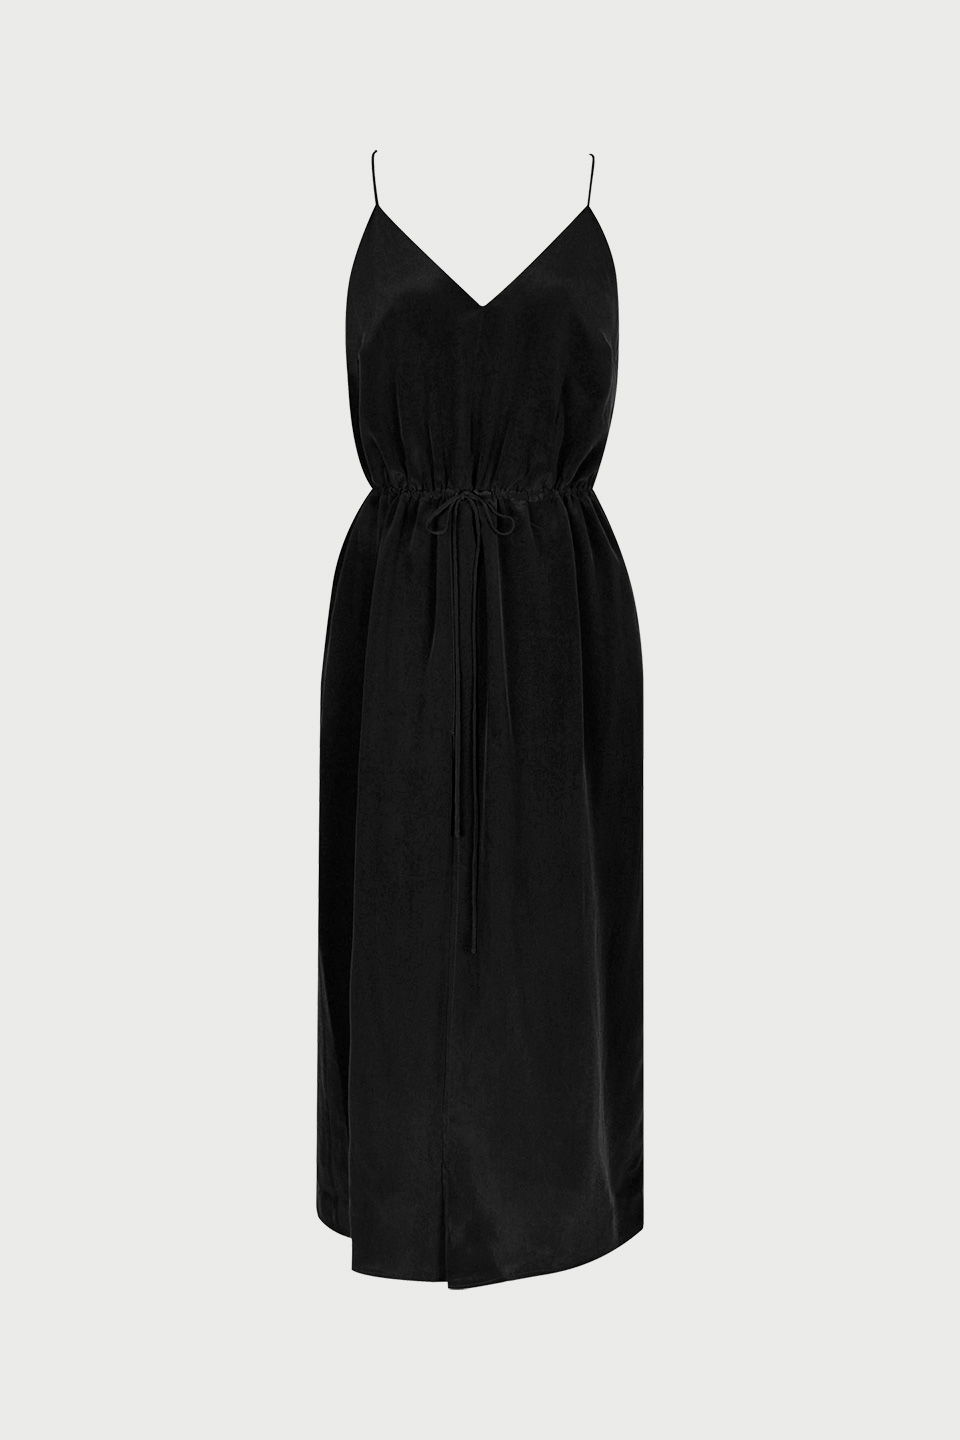 Robe Palace Charcoal en Soie Valentine Gauthier